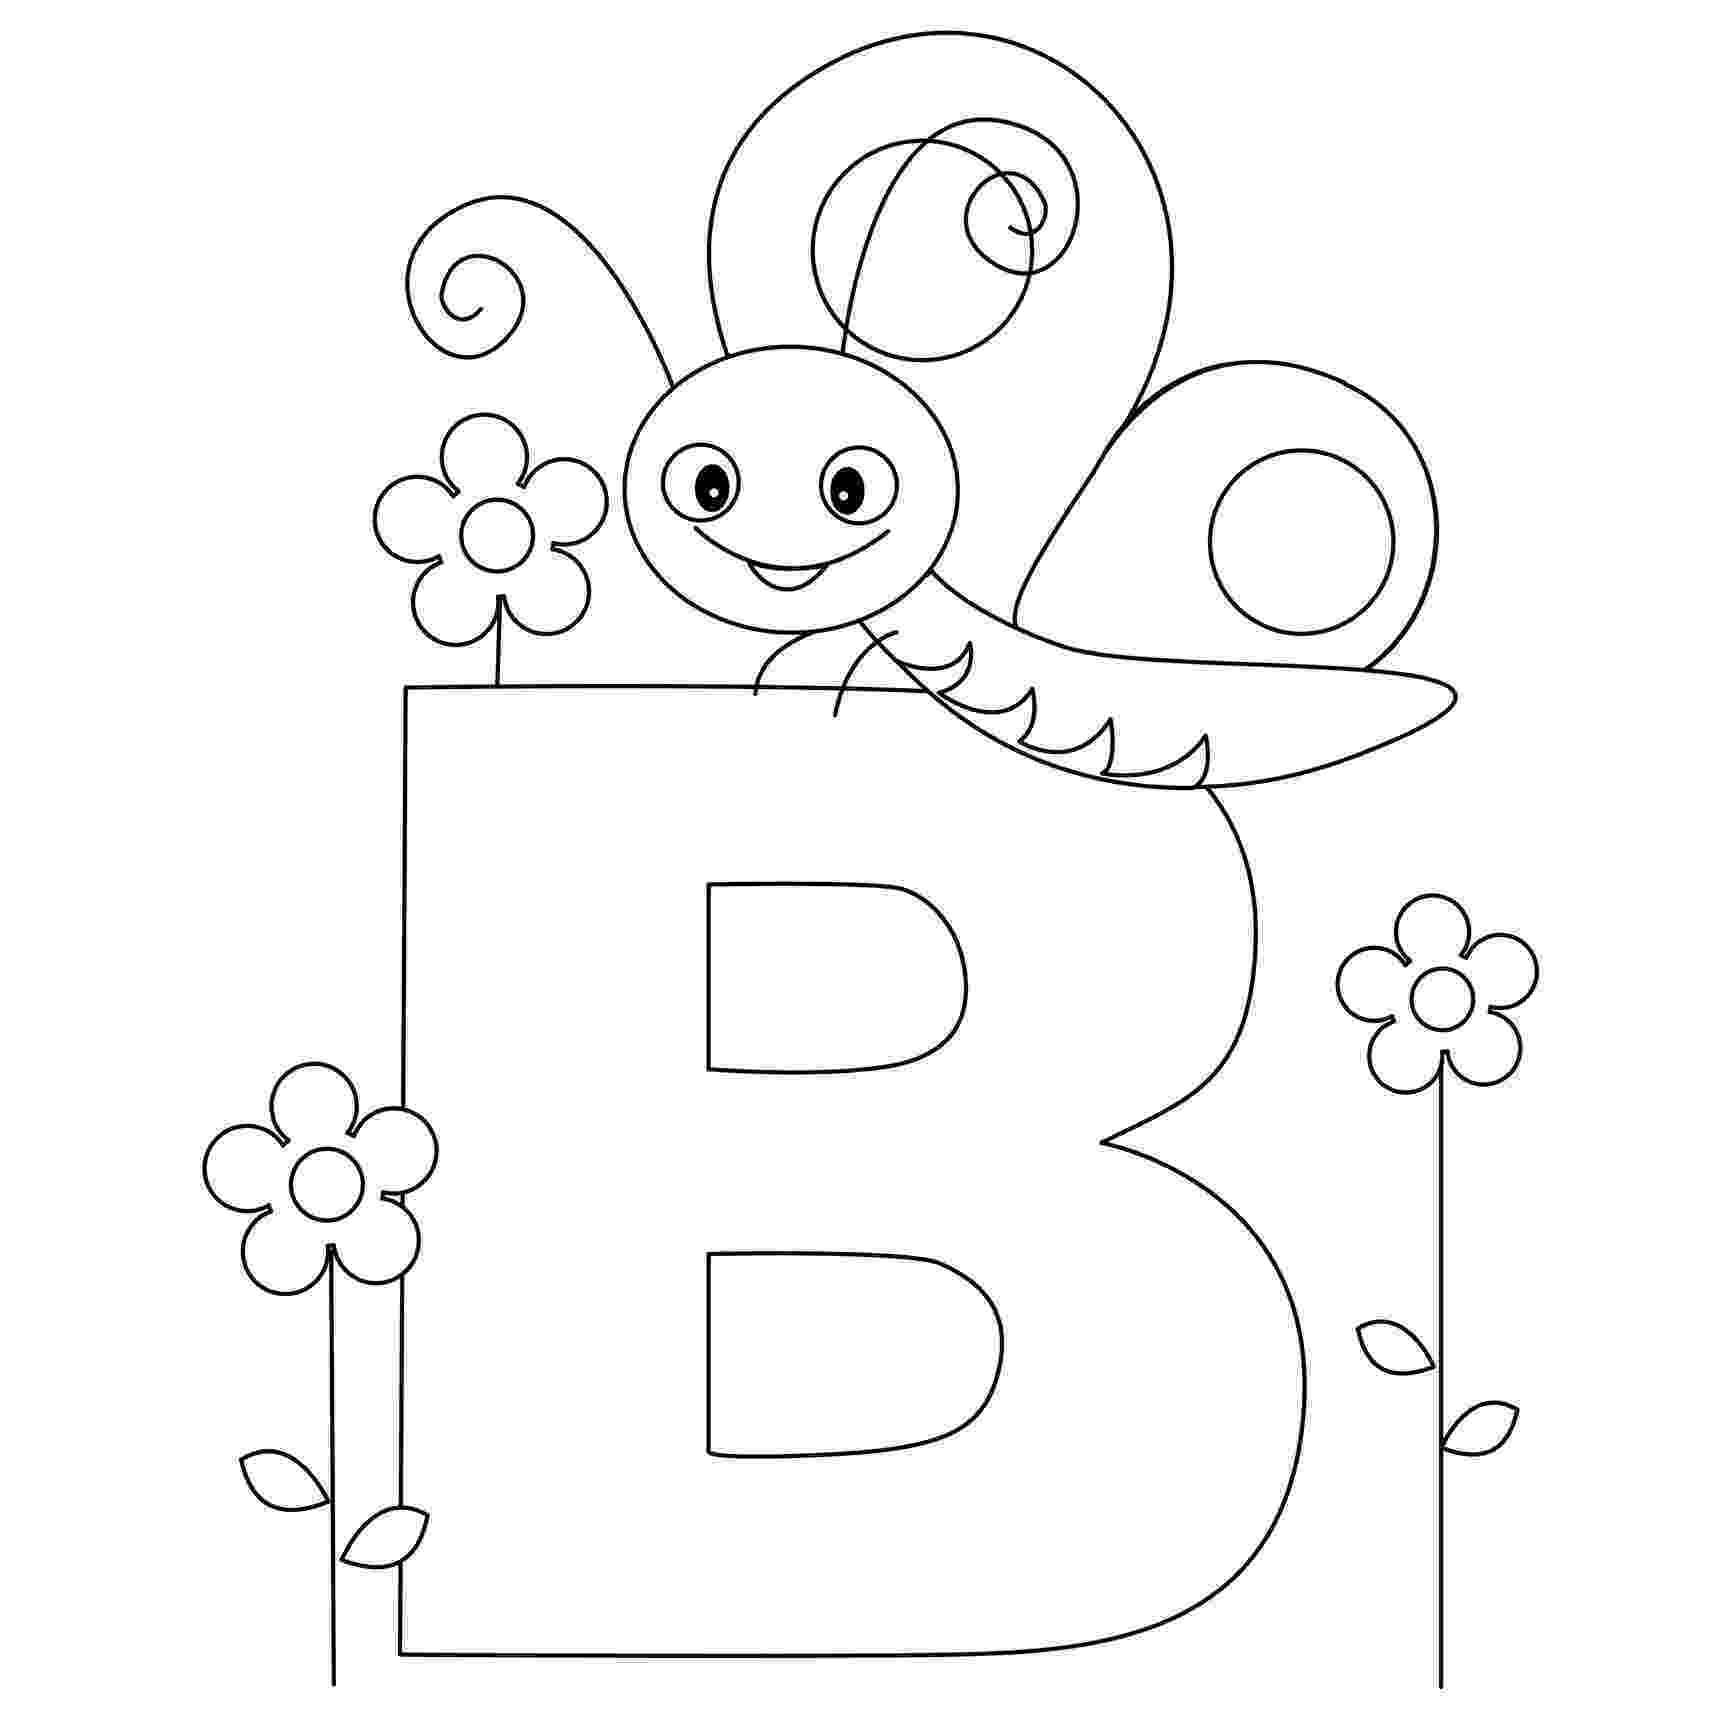 alphabet coloring pages for preschoolers free printable alphabet coloring pages for kids best coloring alphabet for preschoolers pages